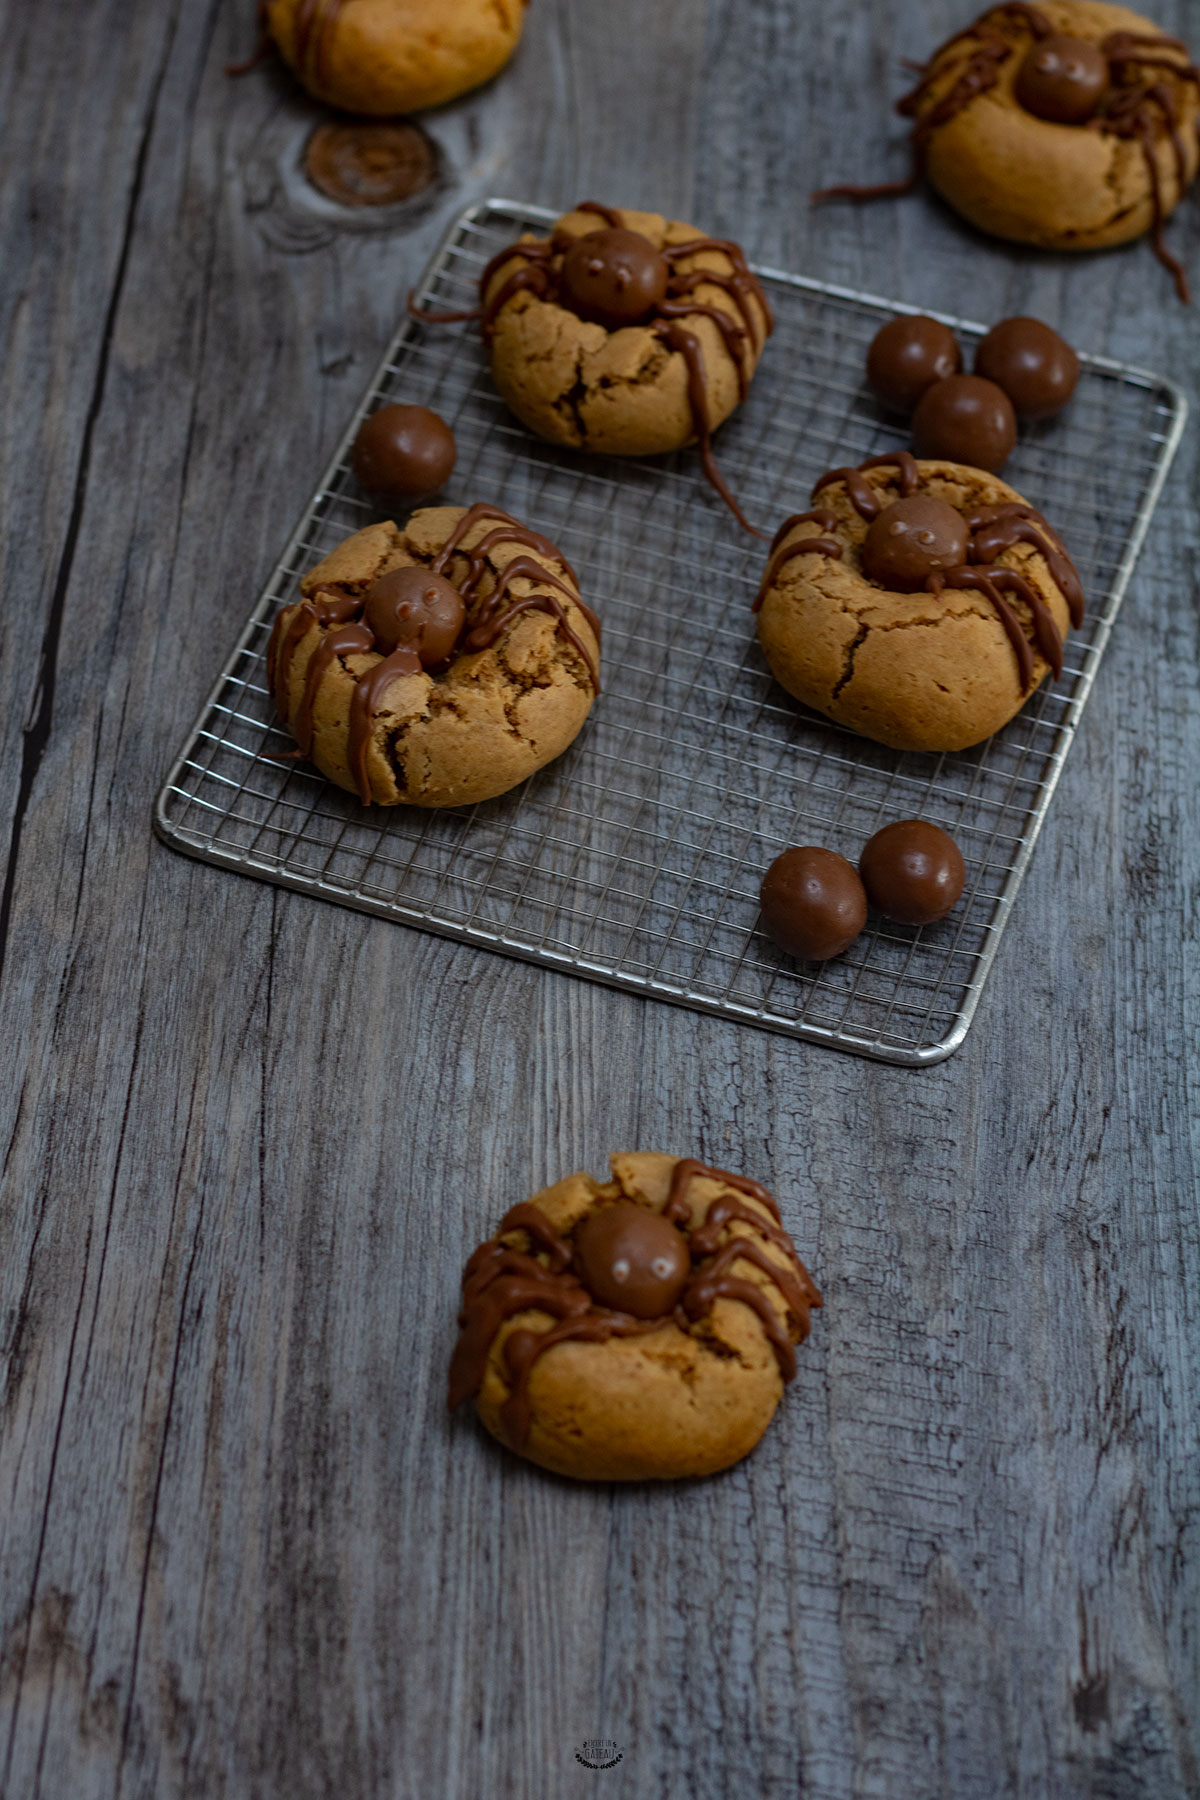 Recettes Faciles Pour Halloween Biscuits Araignées Biscuits Halloween Faciles